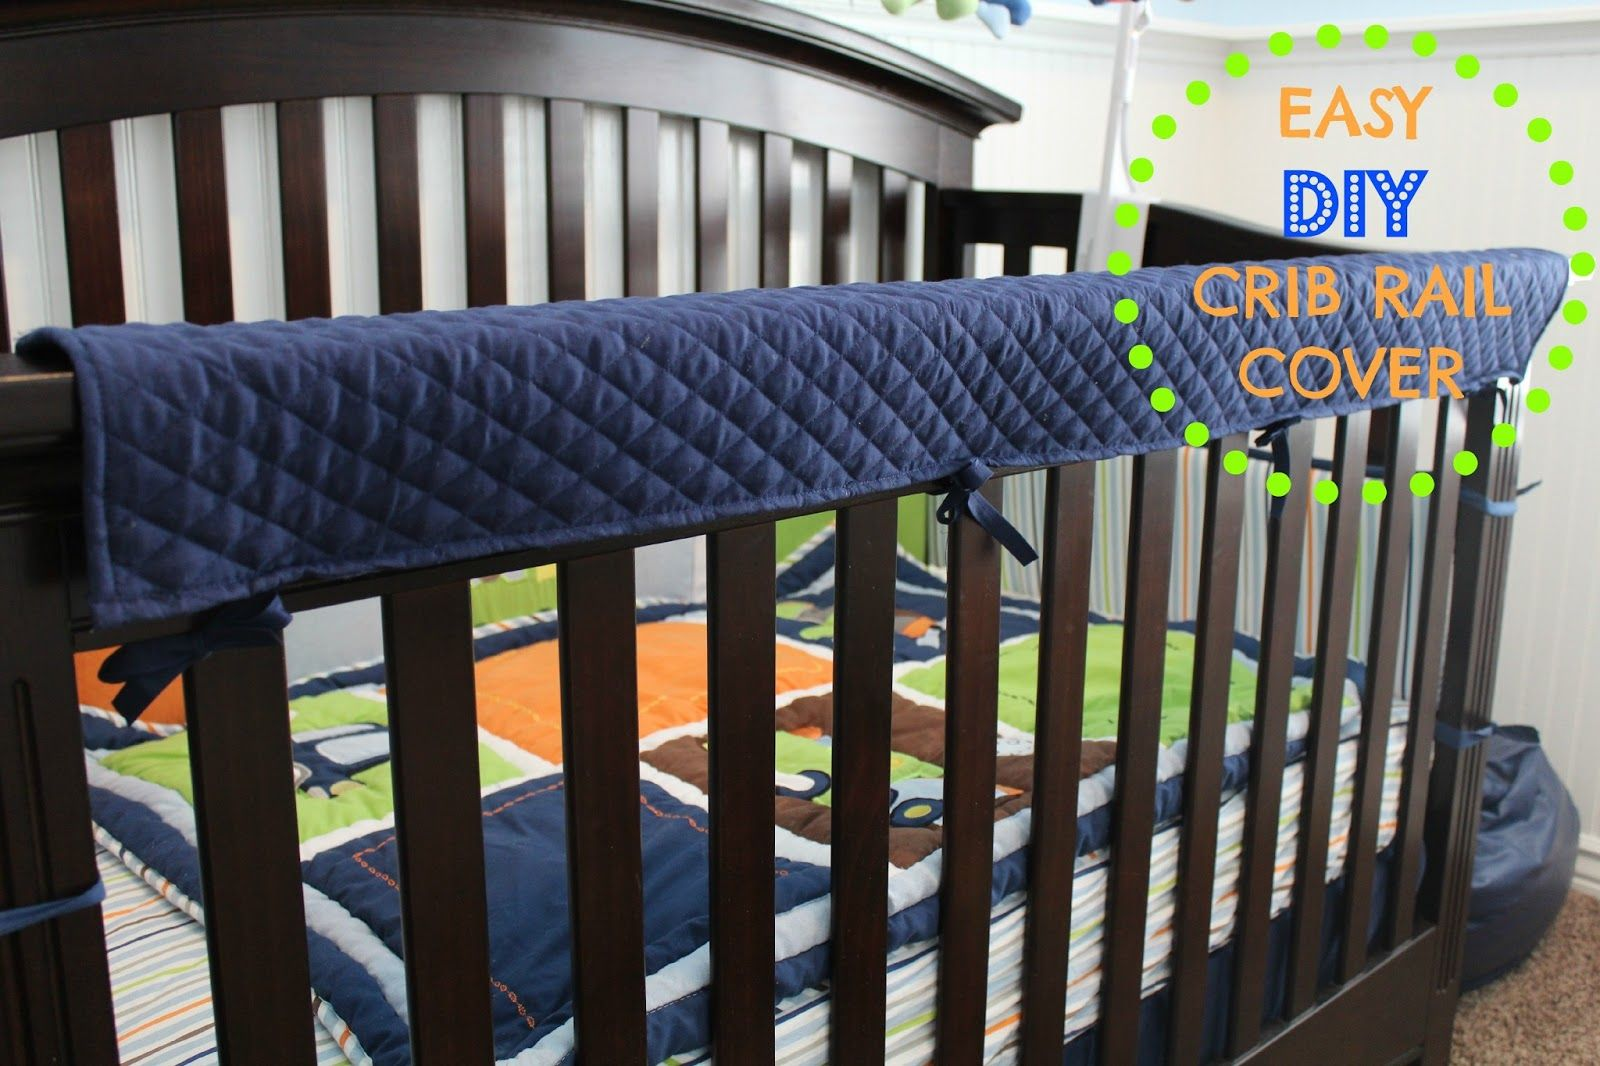 Easy DIY Crib Rail Cover MOMMY ON DEMAND Diy crib